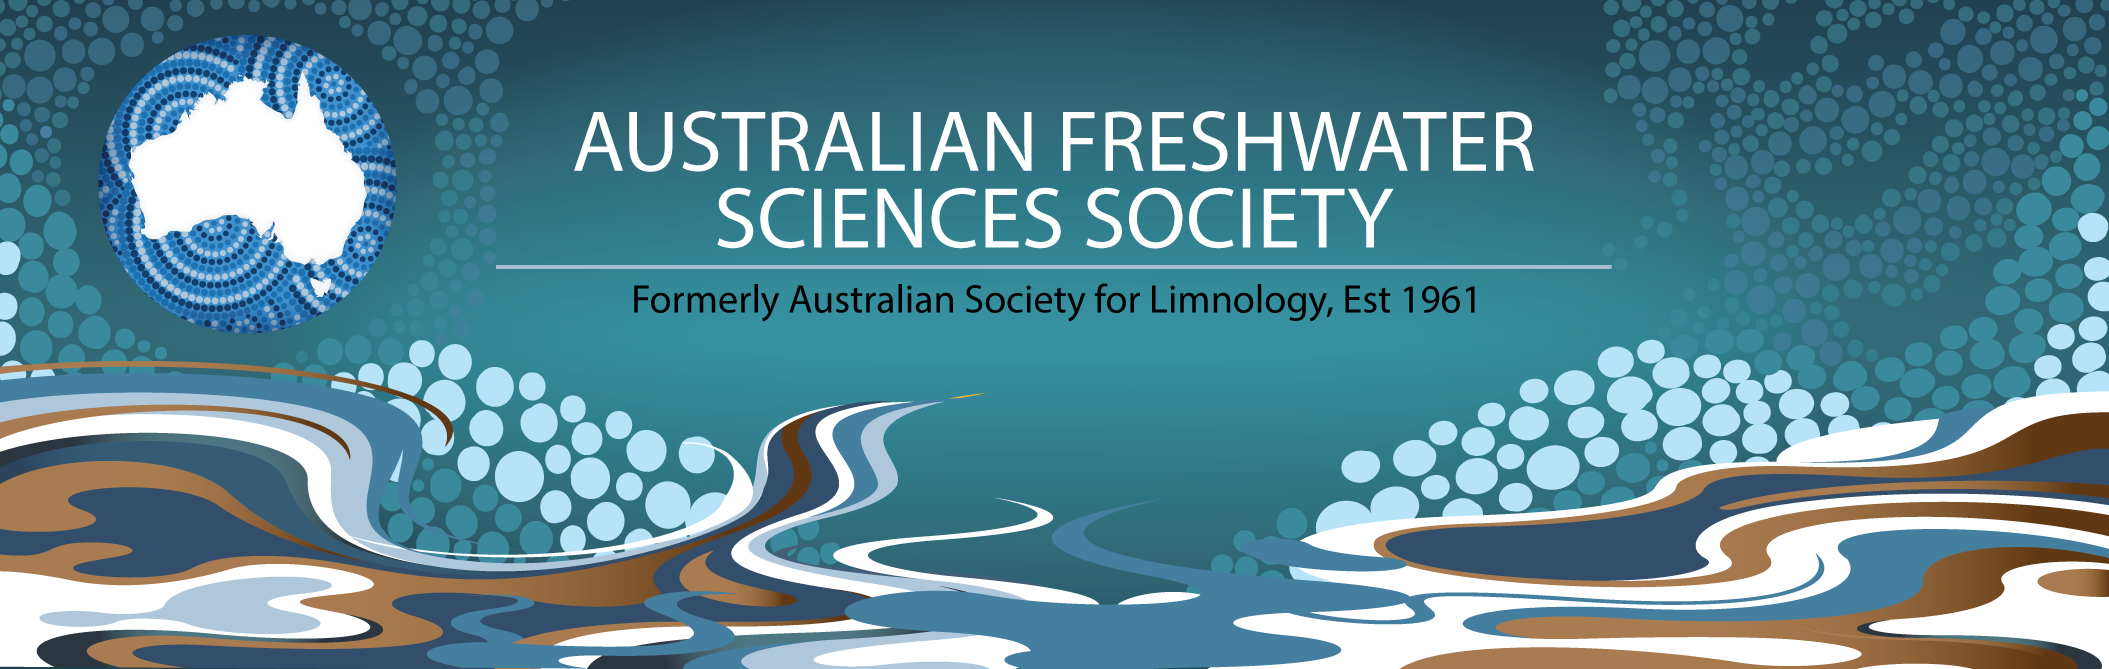 Australian Freshwater Sciences Society Inc (formerly Australian Society for Limnology)